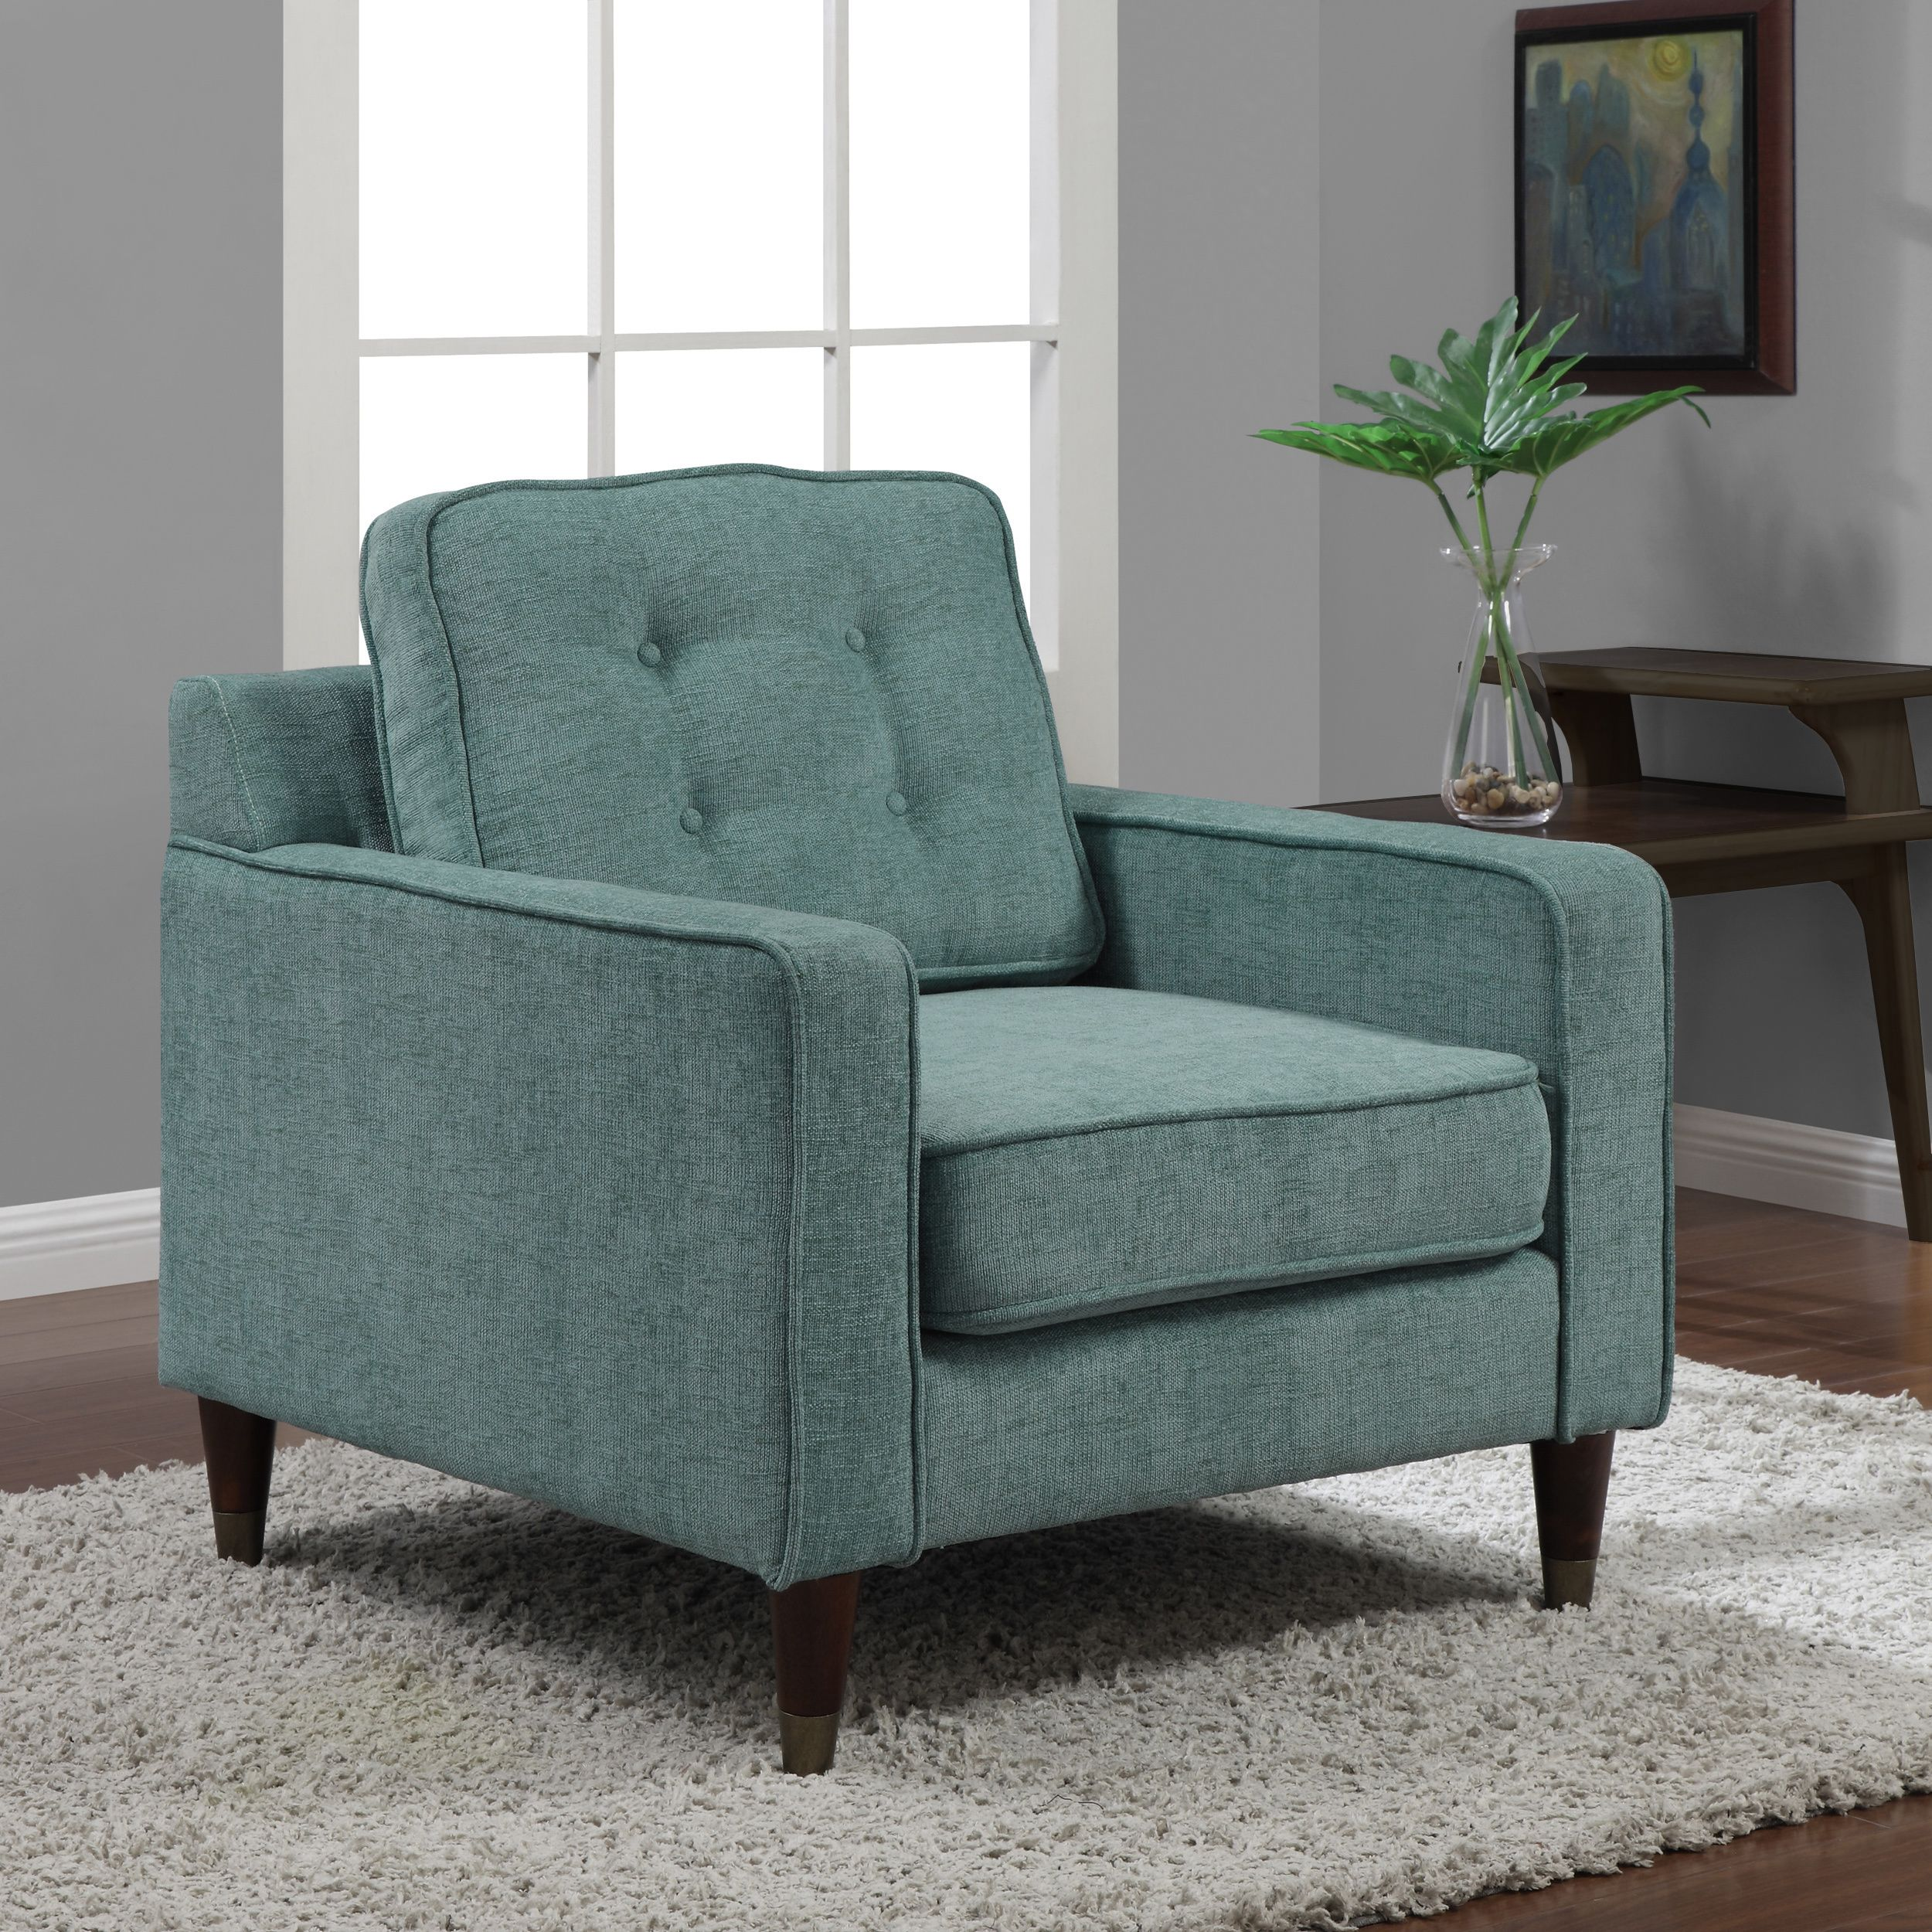 Jackie Aqua Arm Chair  Overstock Shopping  Great Deals On Living Unique Overstock Living Room Chairs Design Inspiration